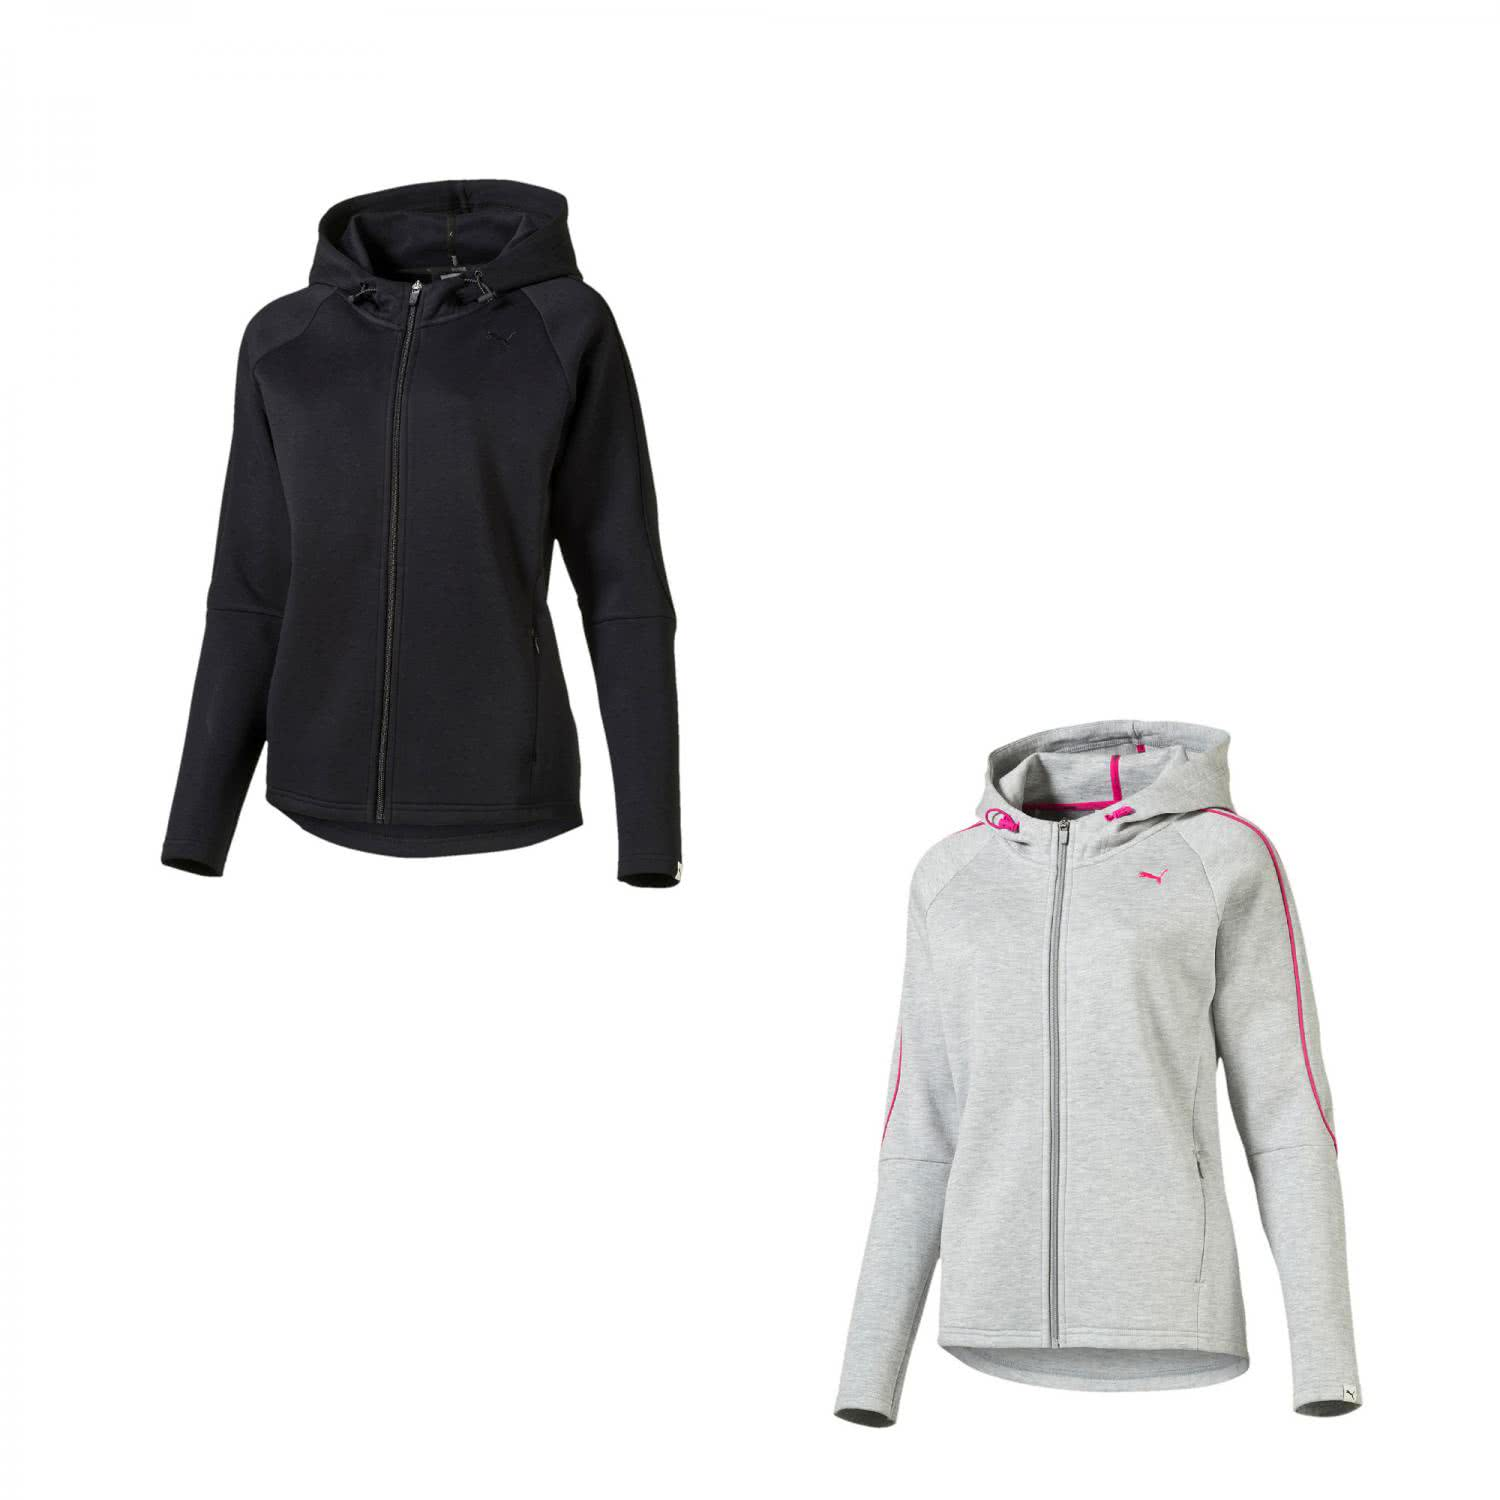 puma damen sweatjacke evo fz hoody 838499 ebay. Black Bedroom Furniture Sets. Home Design Ideas